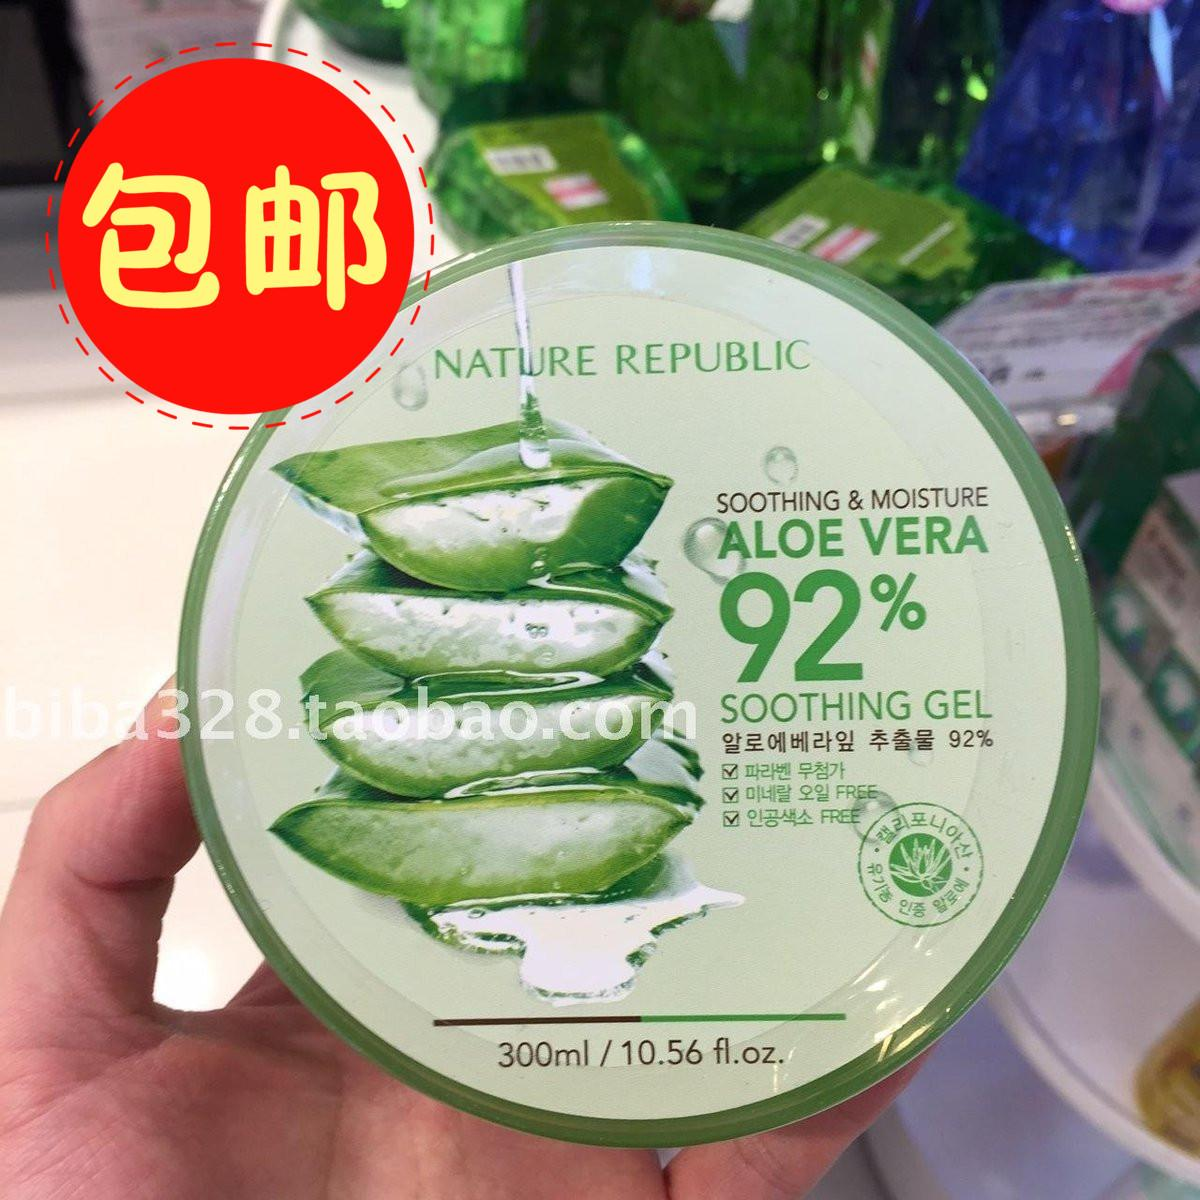 Buy Skin Care Products Online Price Lazada Nature Republic Aloe Vera 92 Soothing Gel 300ml Original Hong Kong Product Acne India After Sun Facemask